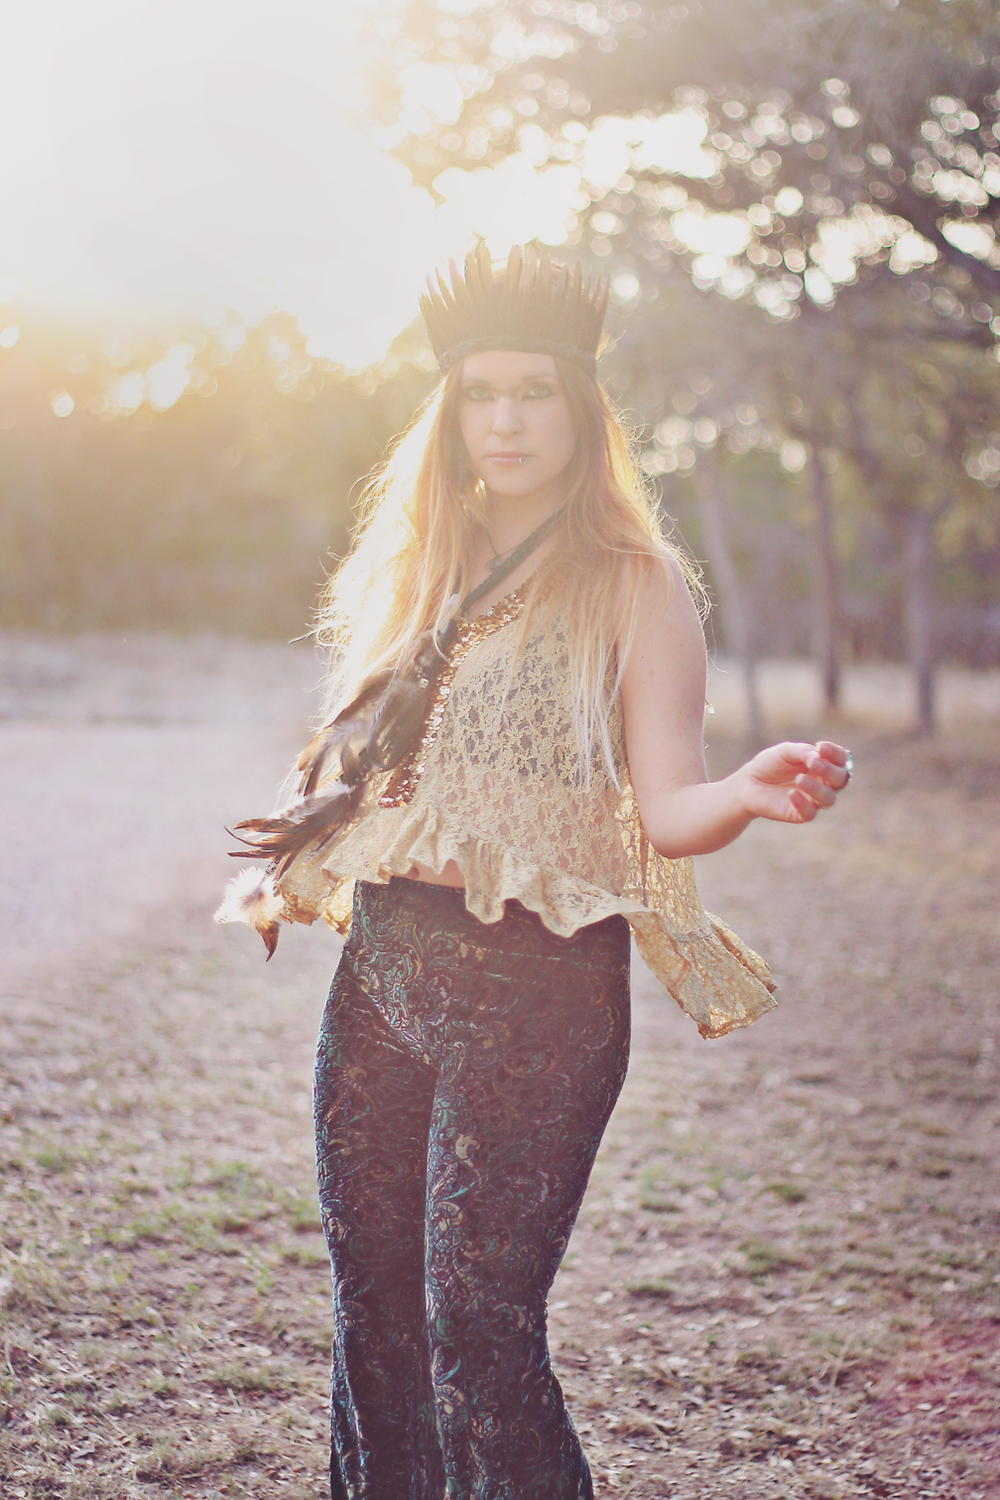 Goldust Lookbook via The Bohemian Collective